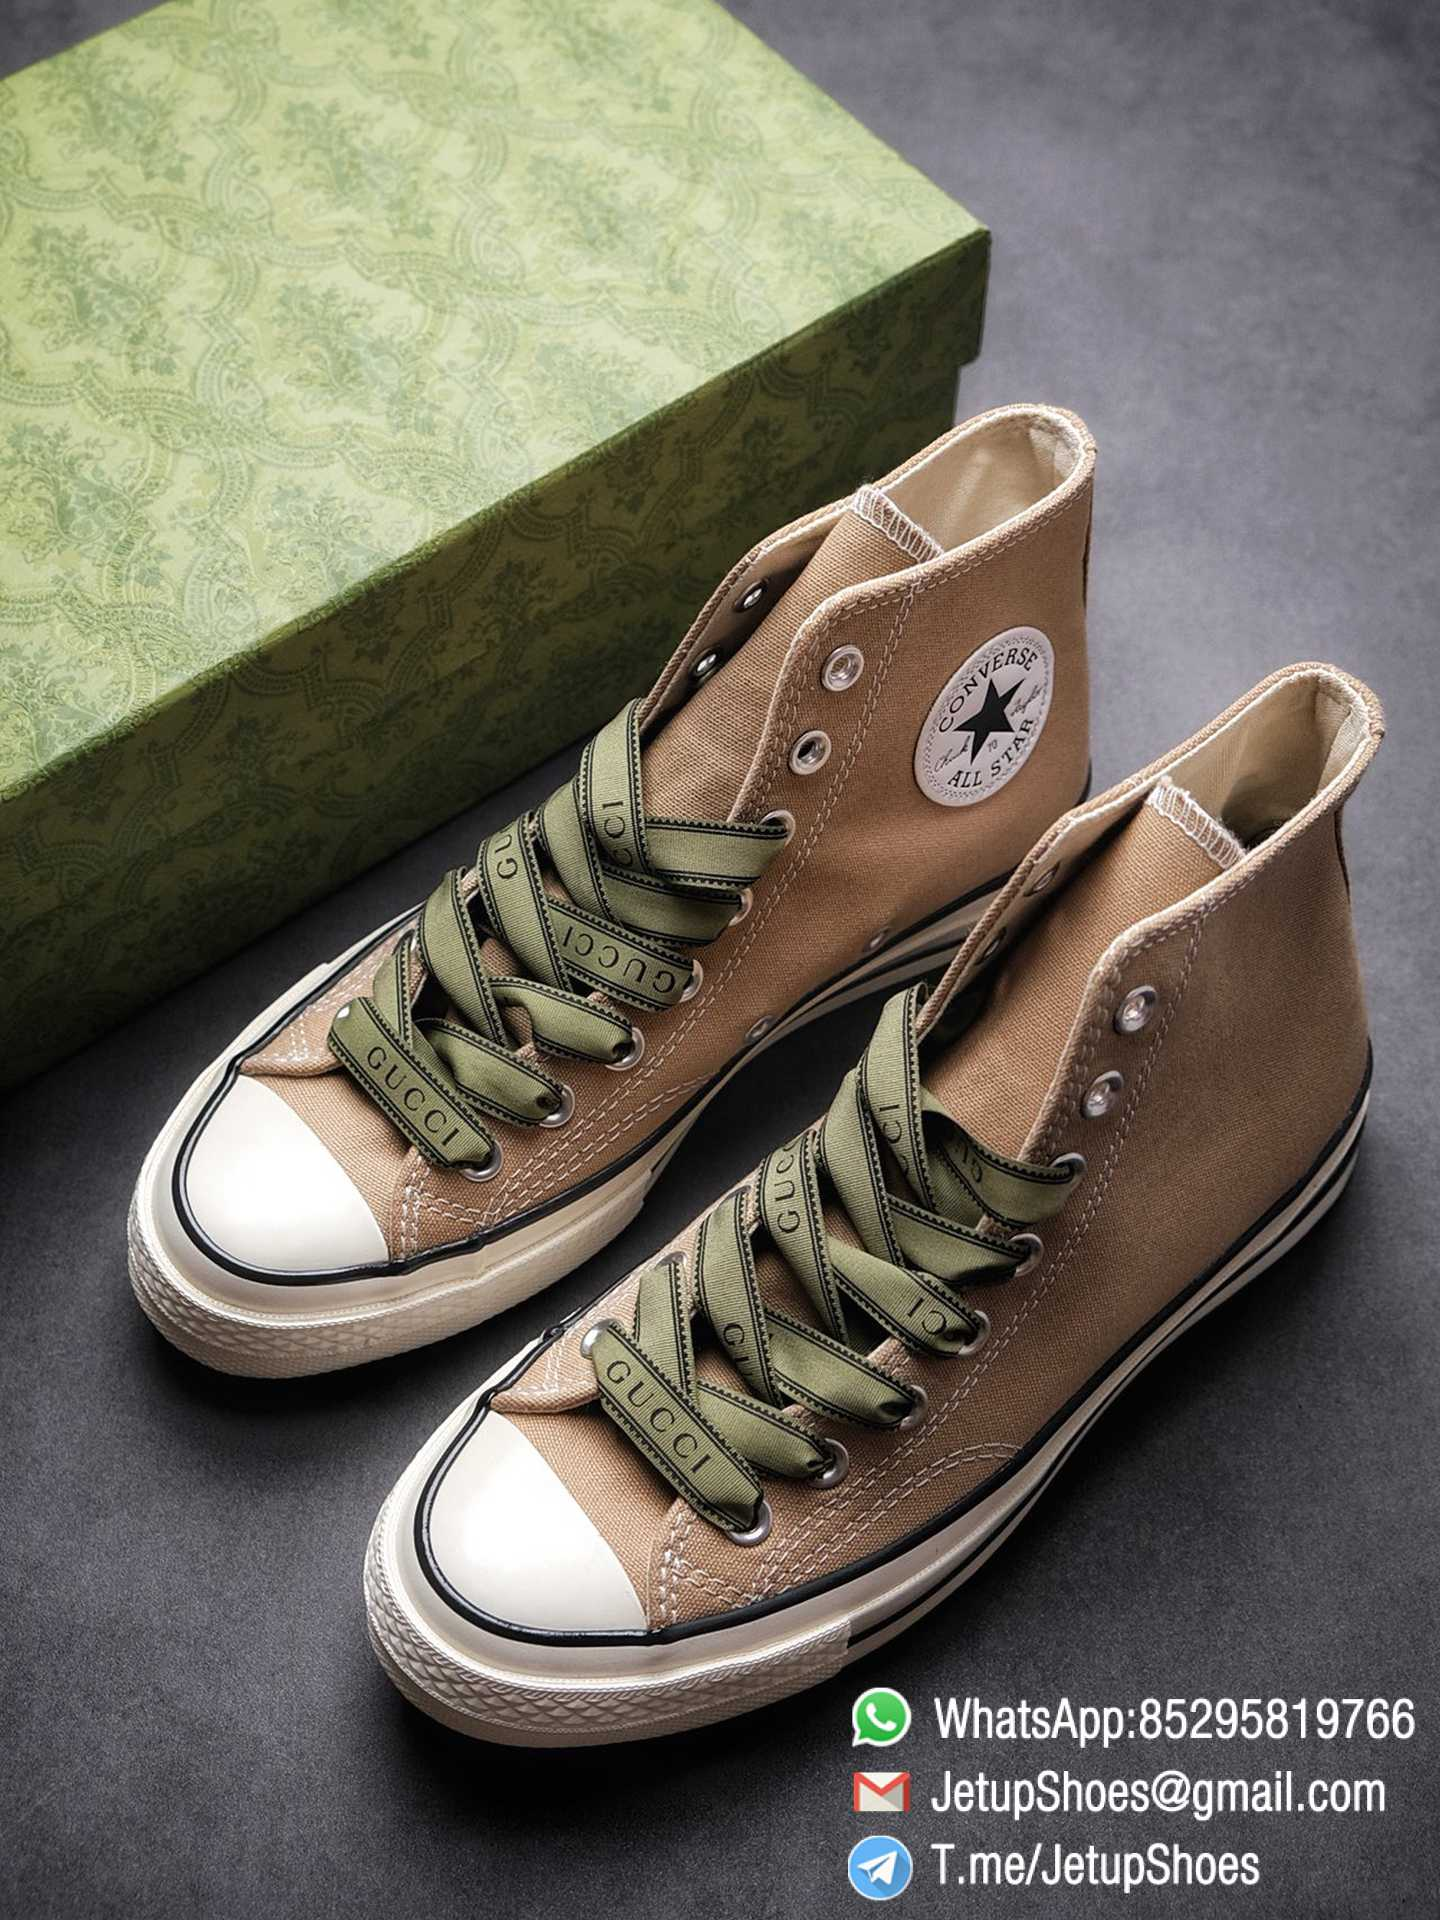 Womens Converse 1970S Special Collaboration Sneaker High Top Trainer Sneakers Vintage Inspired Green Shoelace Black Upper 2021 Spring 00